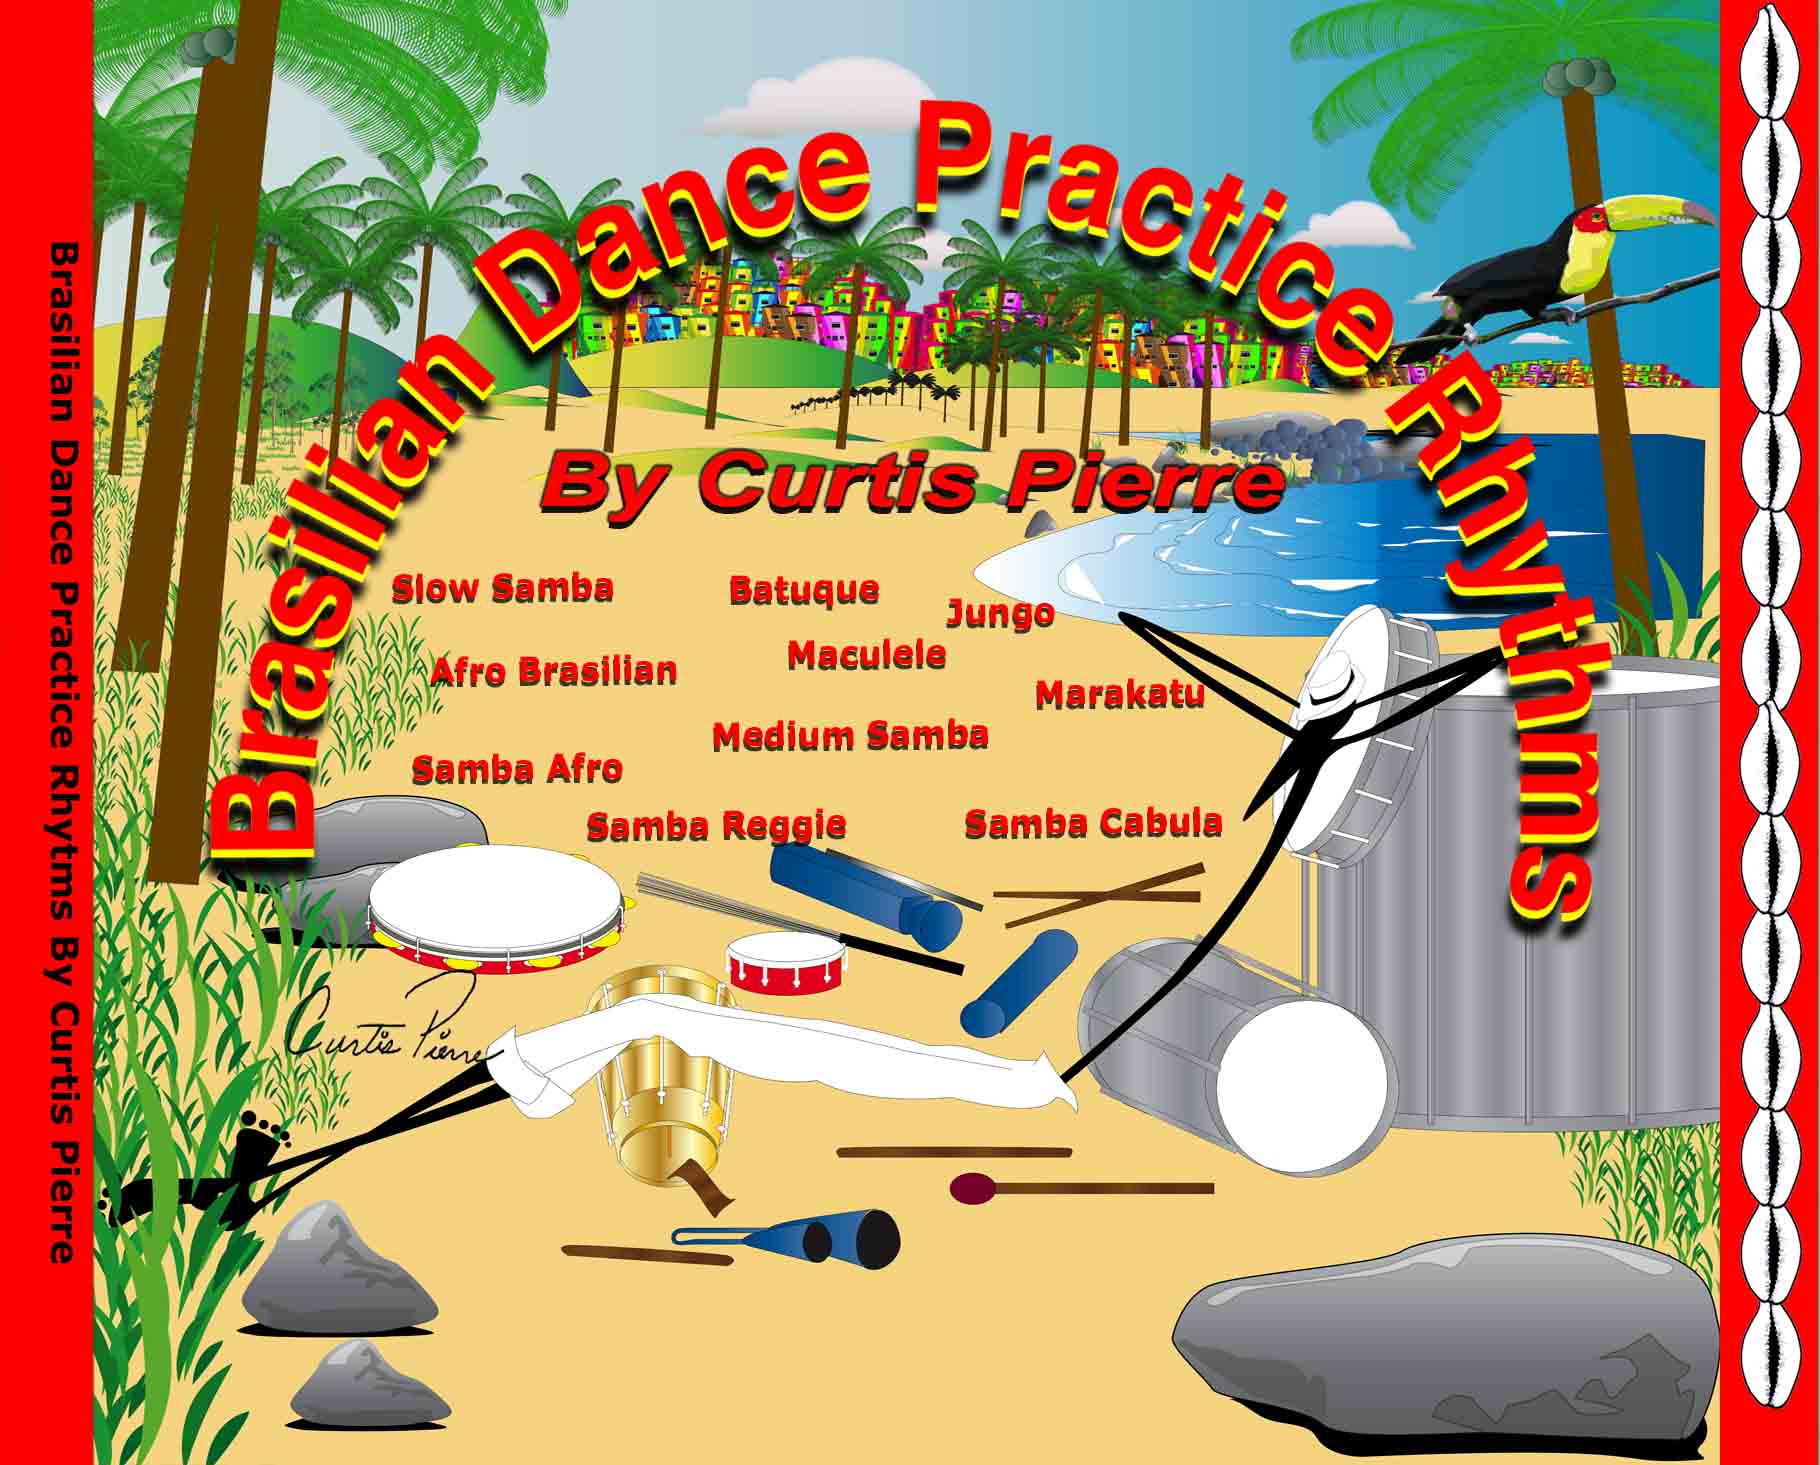 BRAZILIAN DANCE PRACTICE RHYTHMS CD